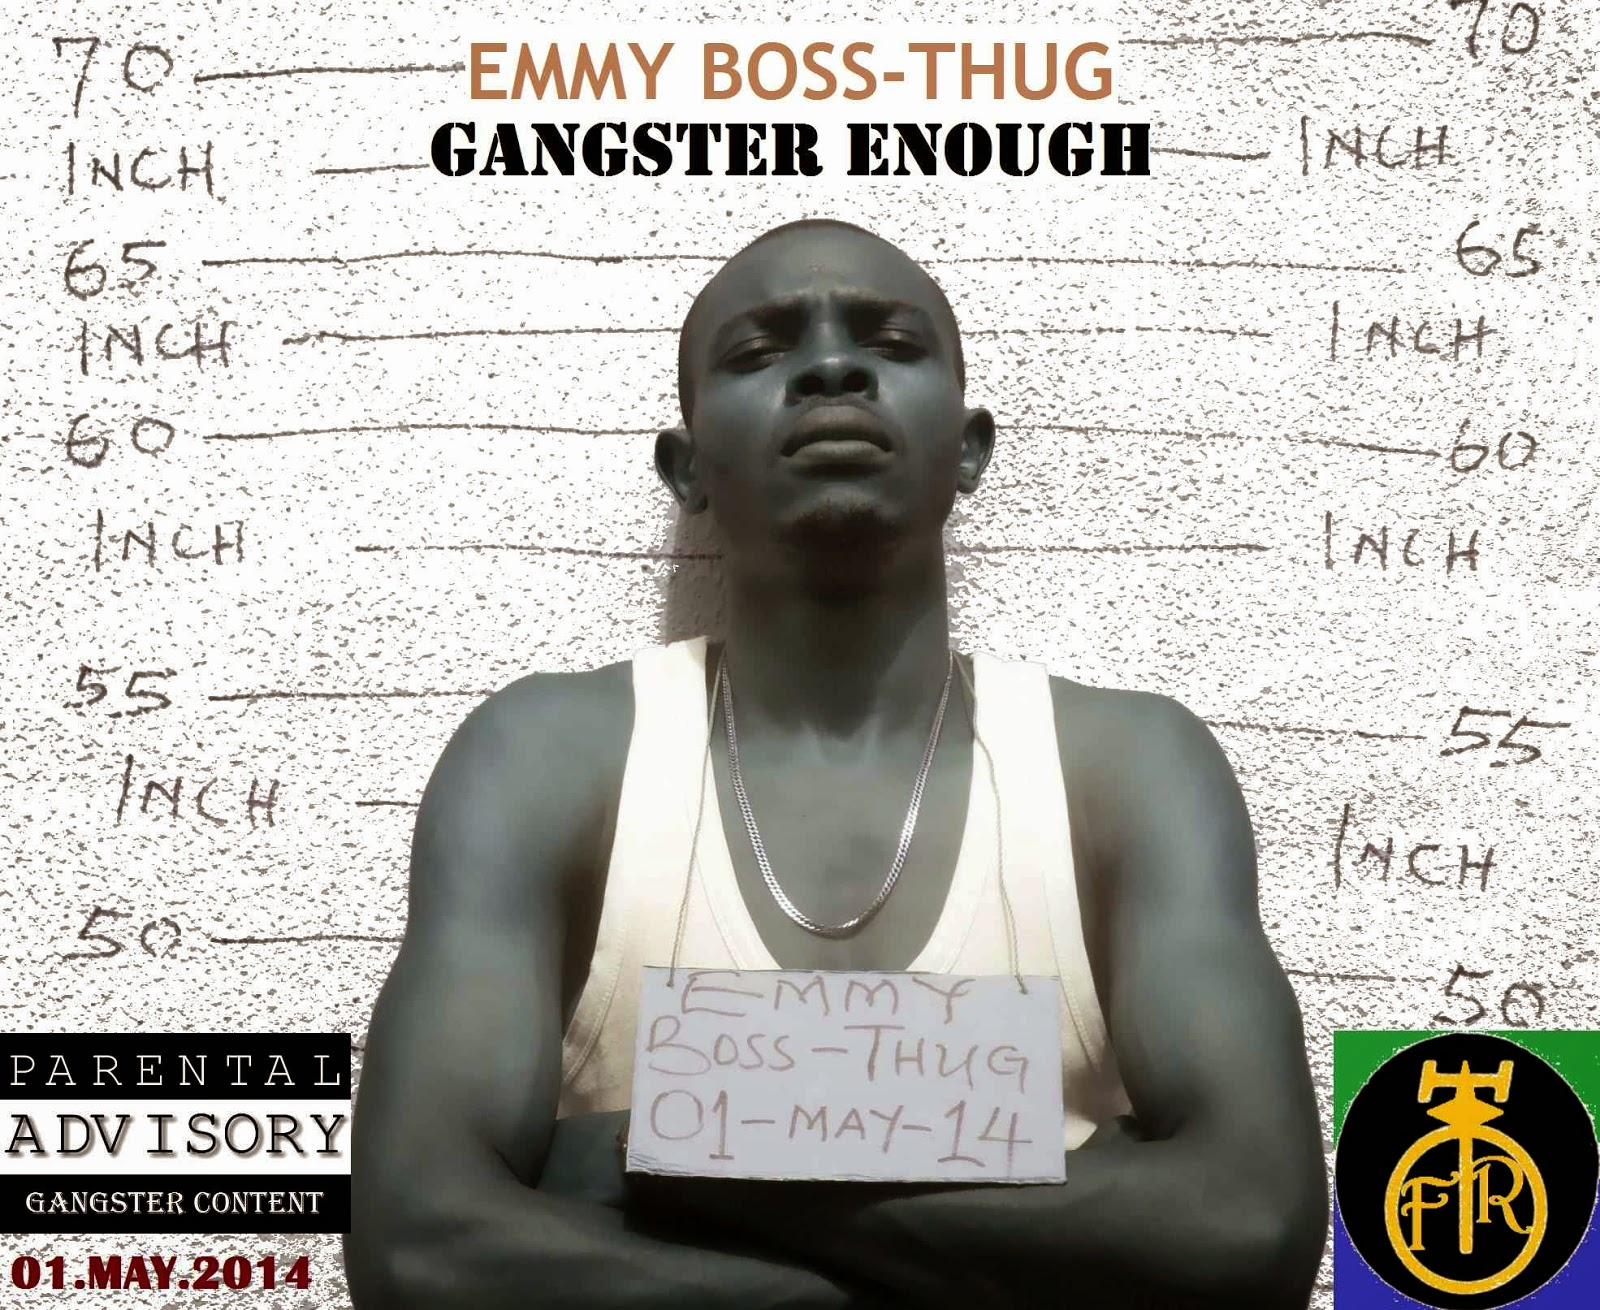 Follow him on TWITTER @emmybossthug to stay posted when he will be hitting  a club near you. Also Like his FACEBOOK Page Emmy Boss-Thug for updates and  ...